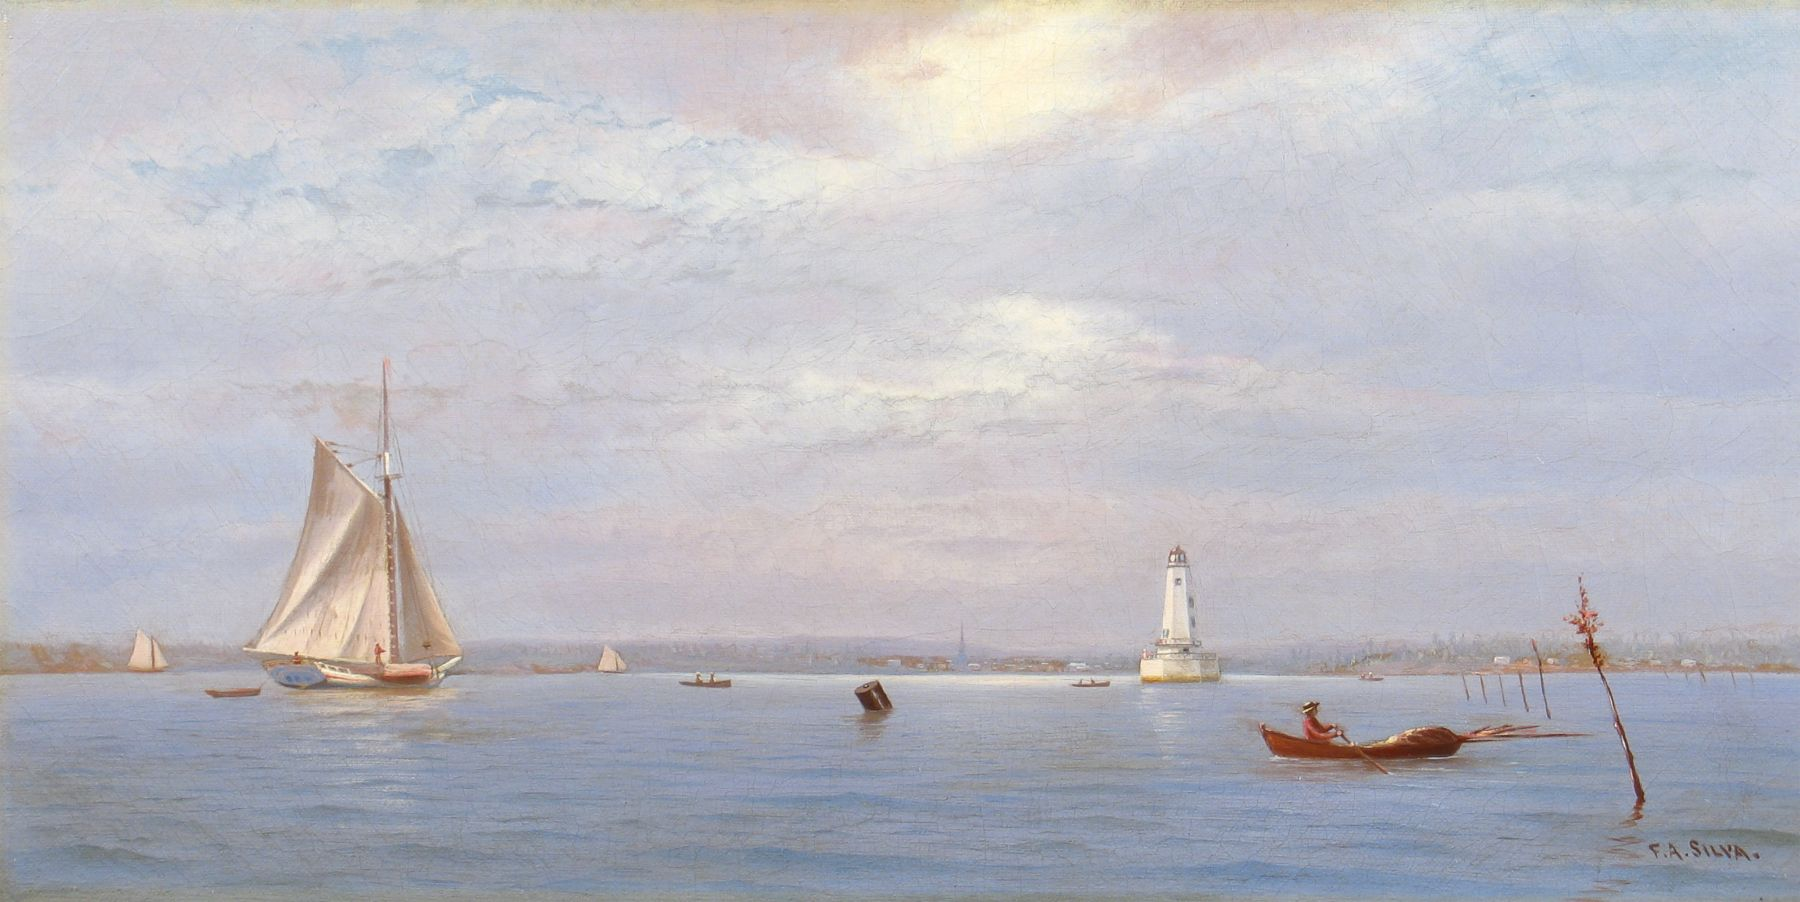 Francis Augustus Silva (1835–1886), Robbin's Reef Lighthouse off Tompkinsville, New York Harbor, c. 1880, oil on canvas, 9 x 18 in., signed lower right: F. A. Silva.